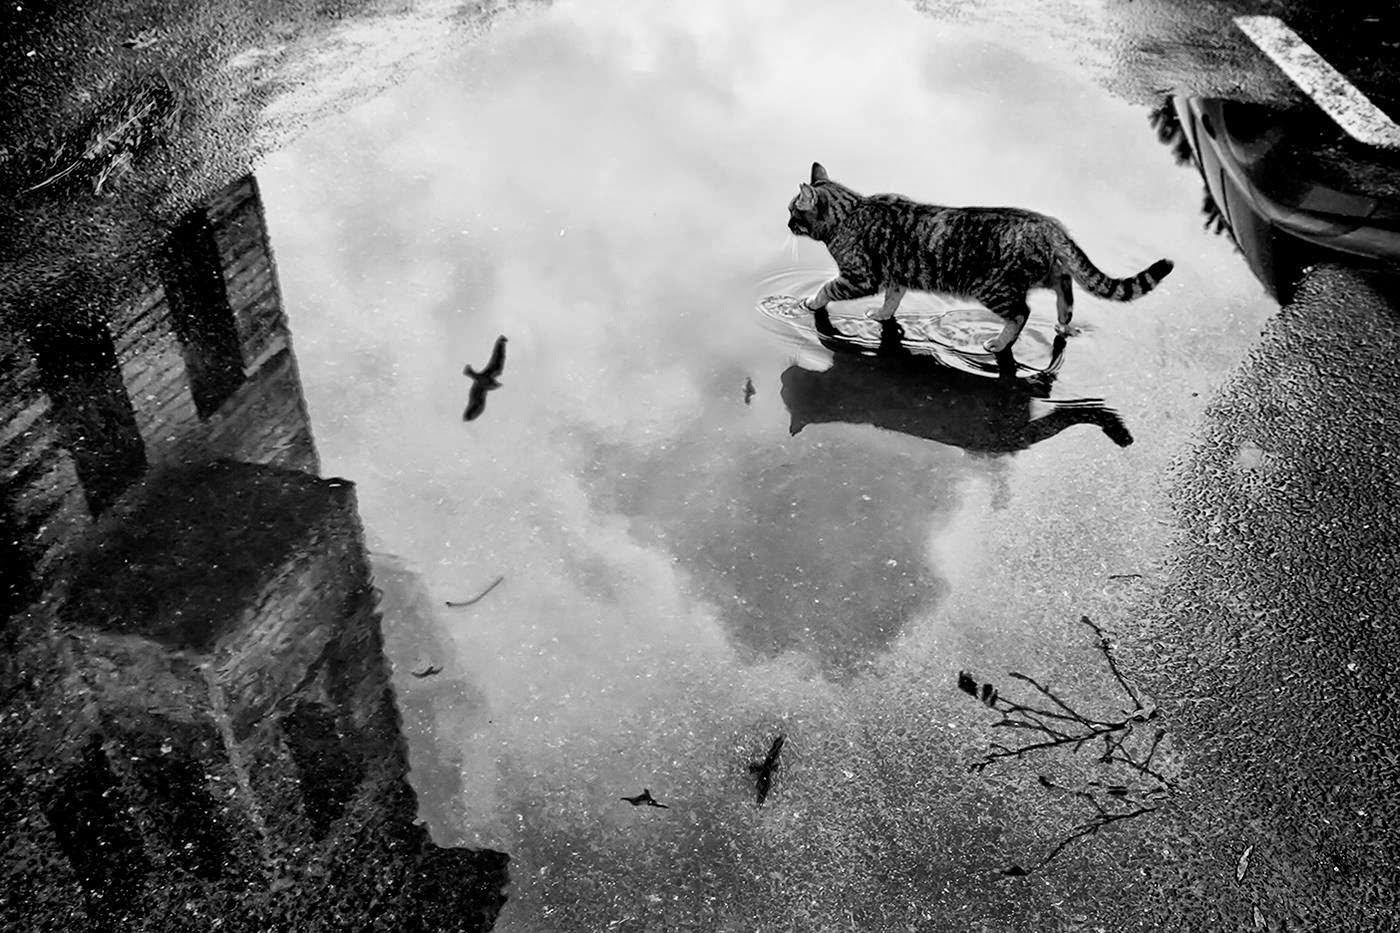 Rain Cats and Kittens Images